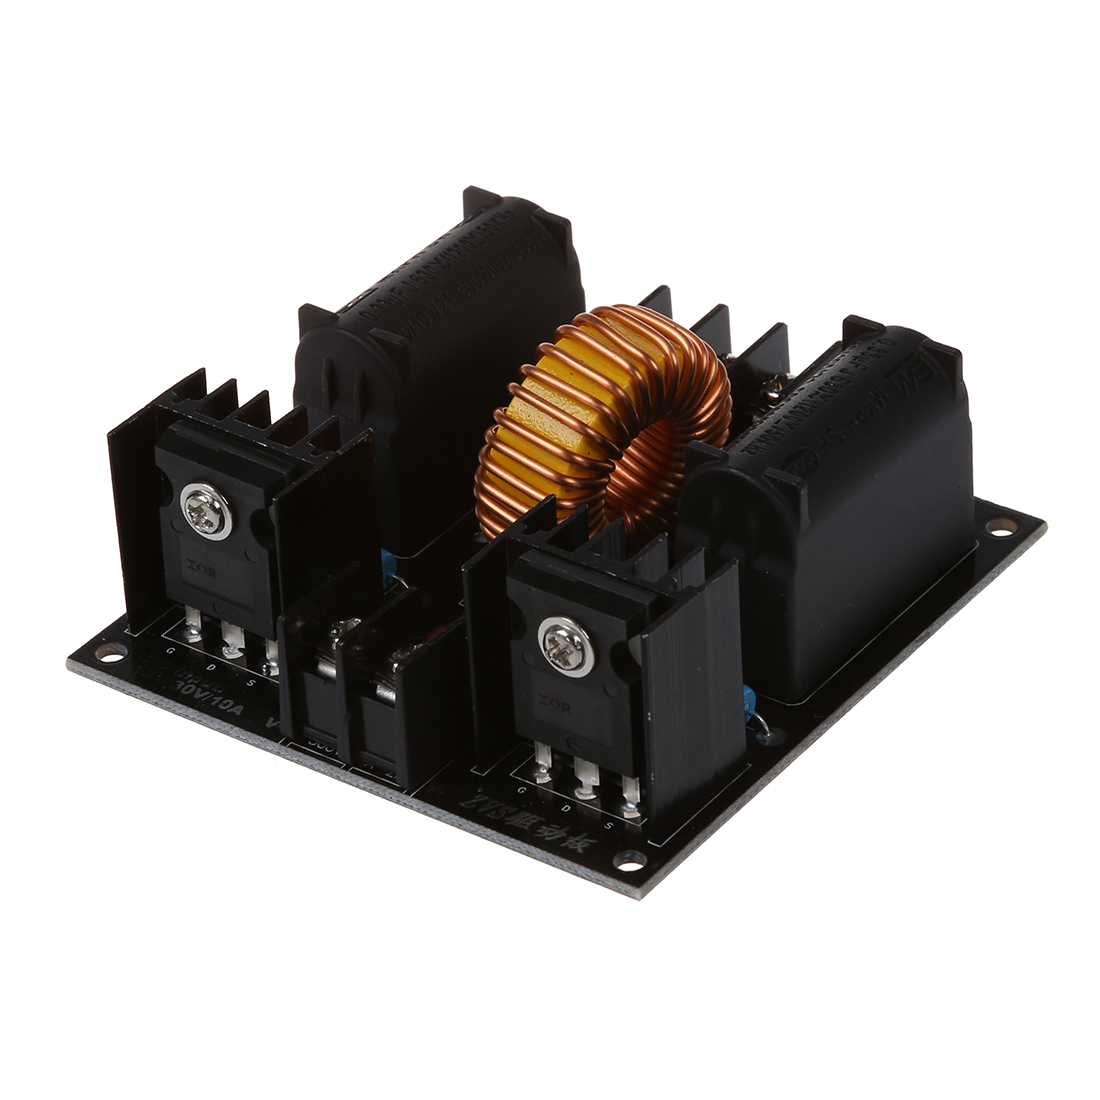 Zvs Tesla Coil Driver Board Marx Generator Jacobs Ladder Power Transformer On Induction Heater Schematic Diagram Supply T1w2